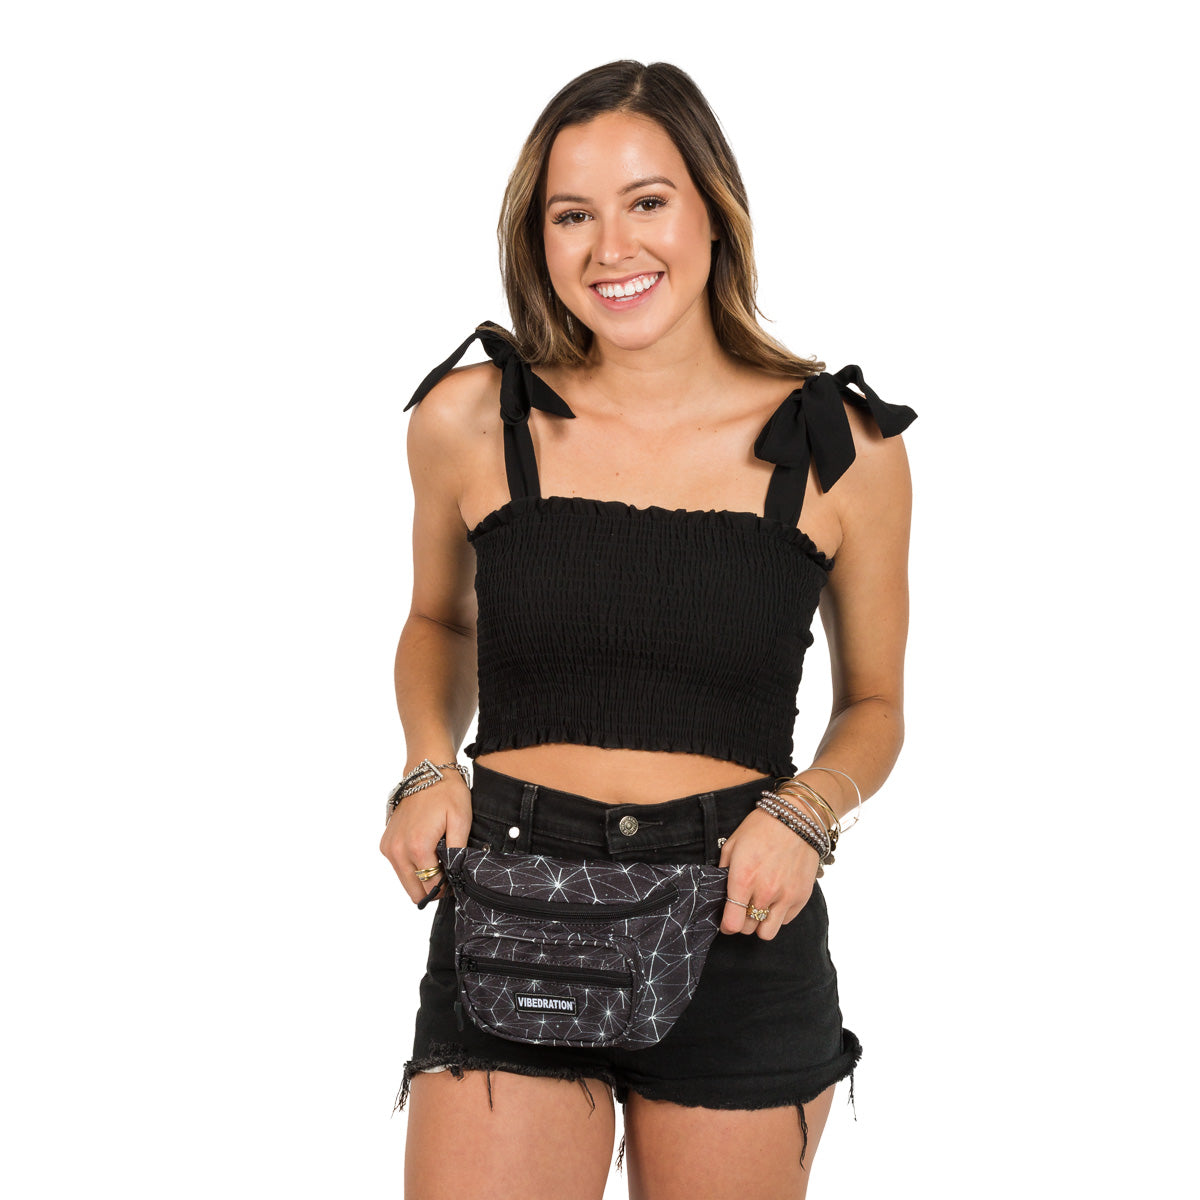 Black Printed Fanny Pack for Festivals